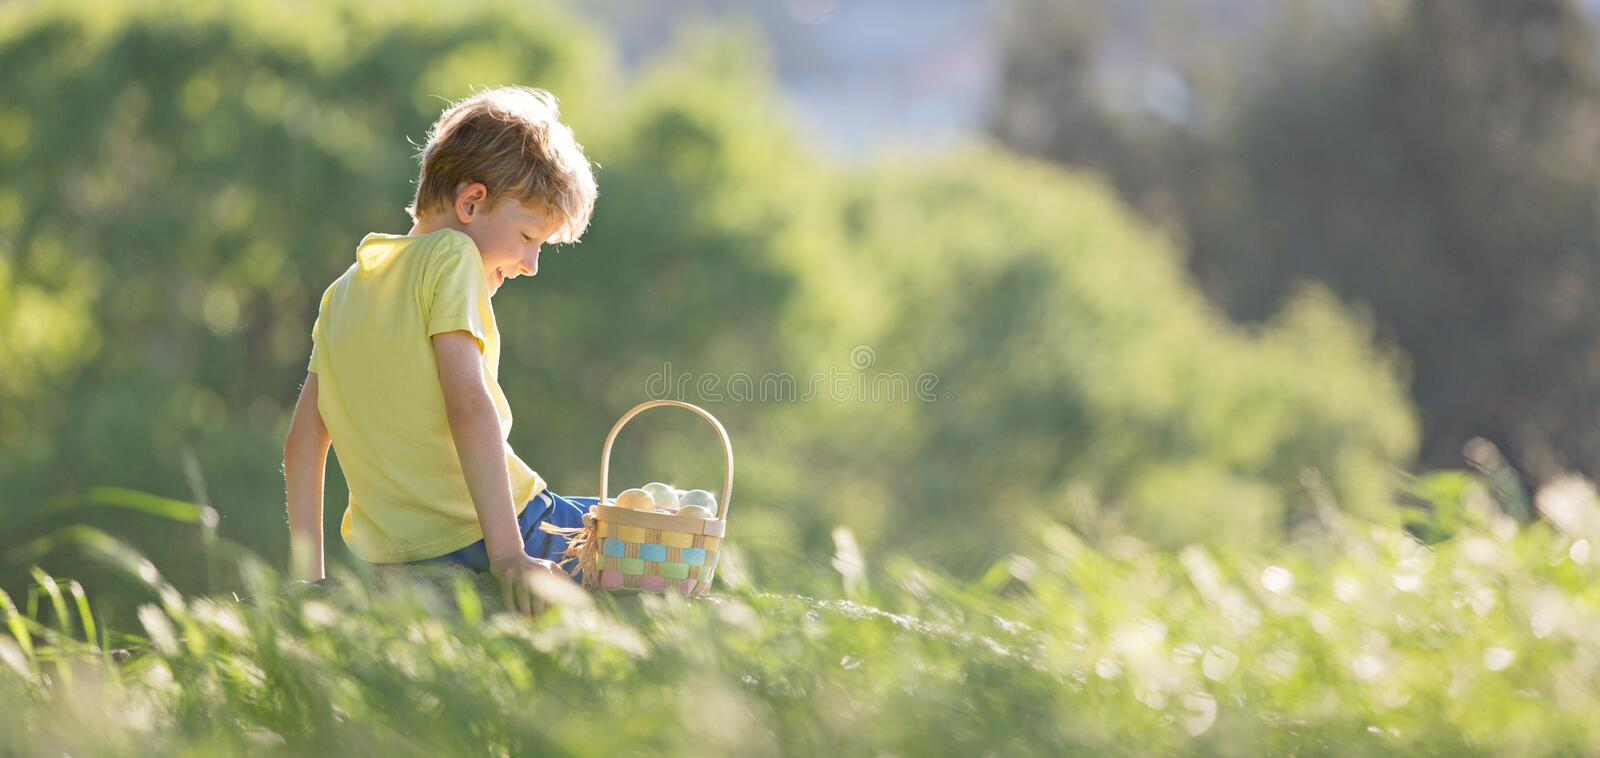 Boy at easter time royalty free stock photo